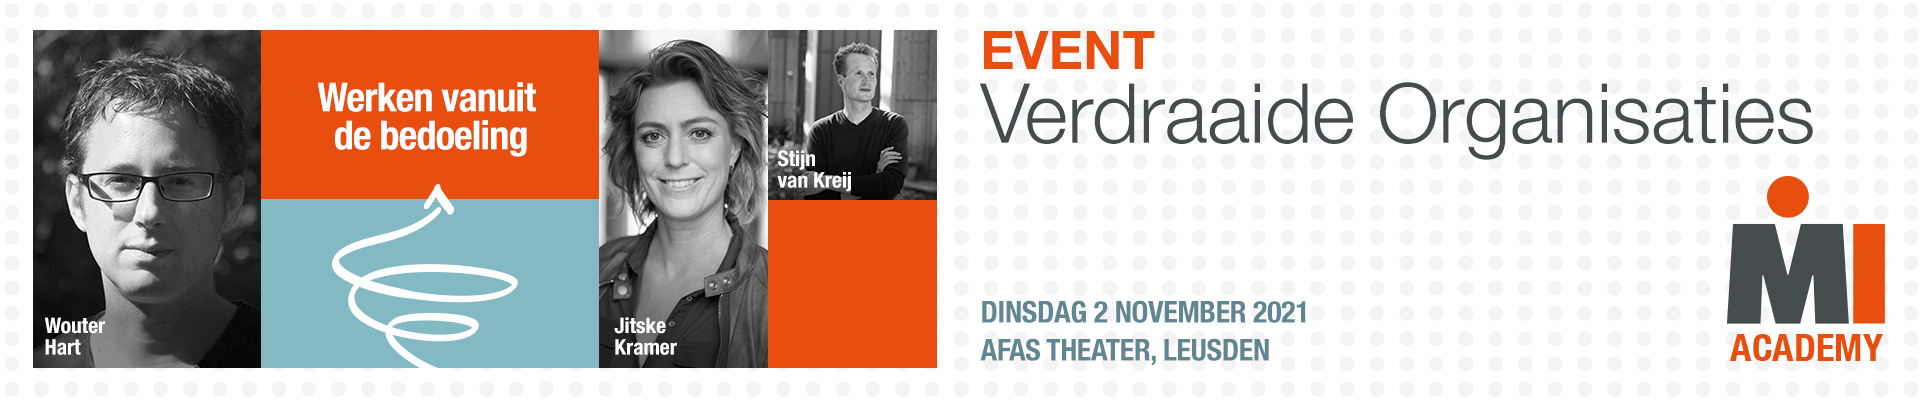 Event Verdraaide Organisaties